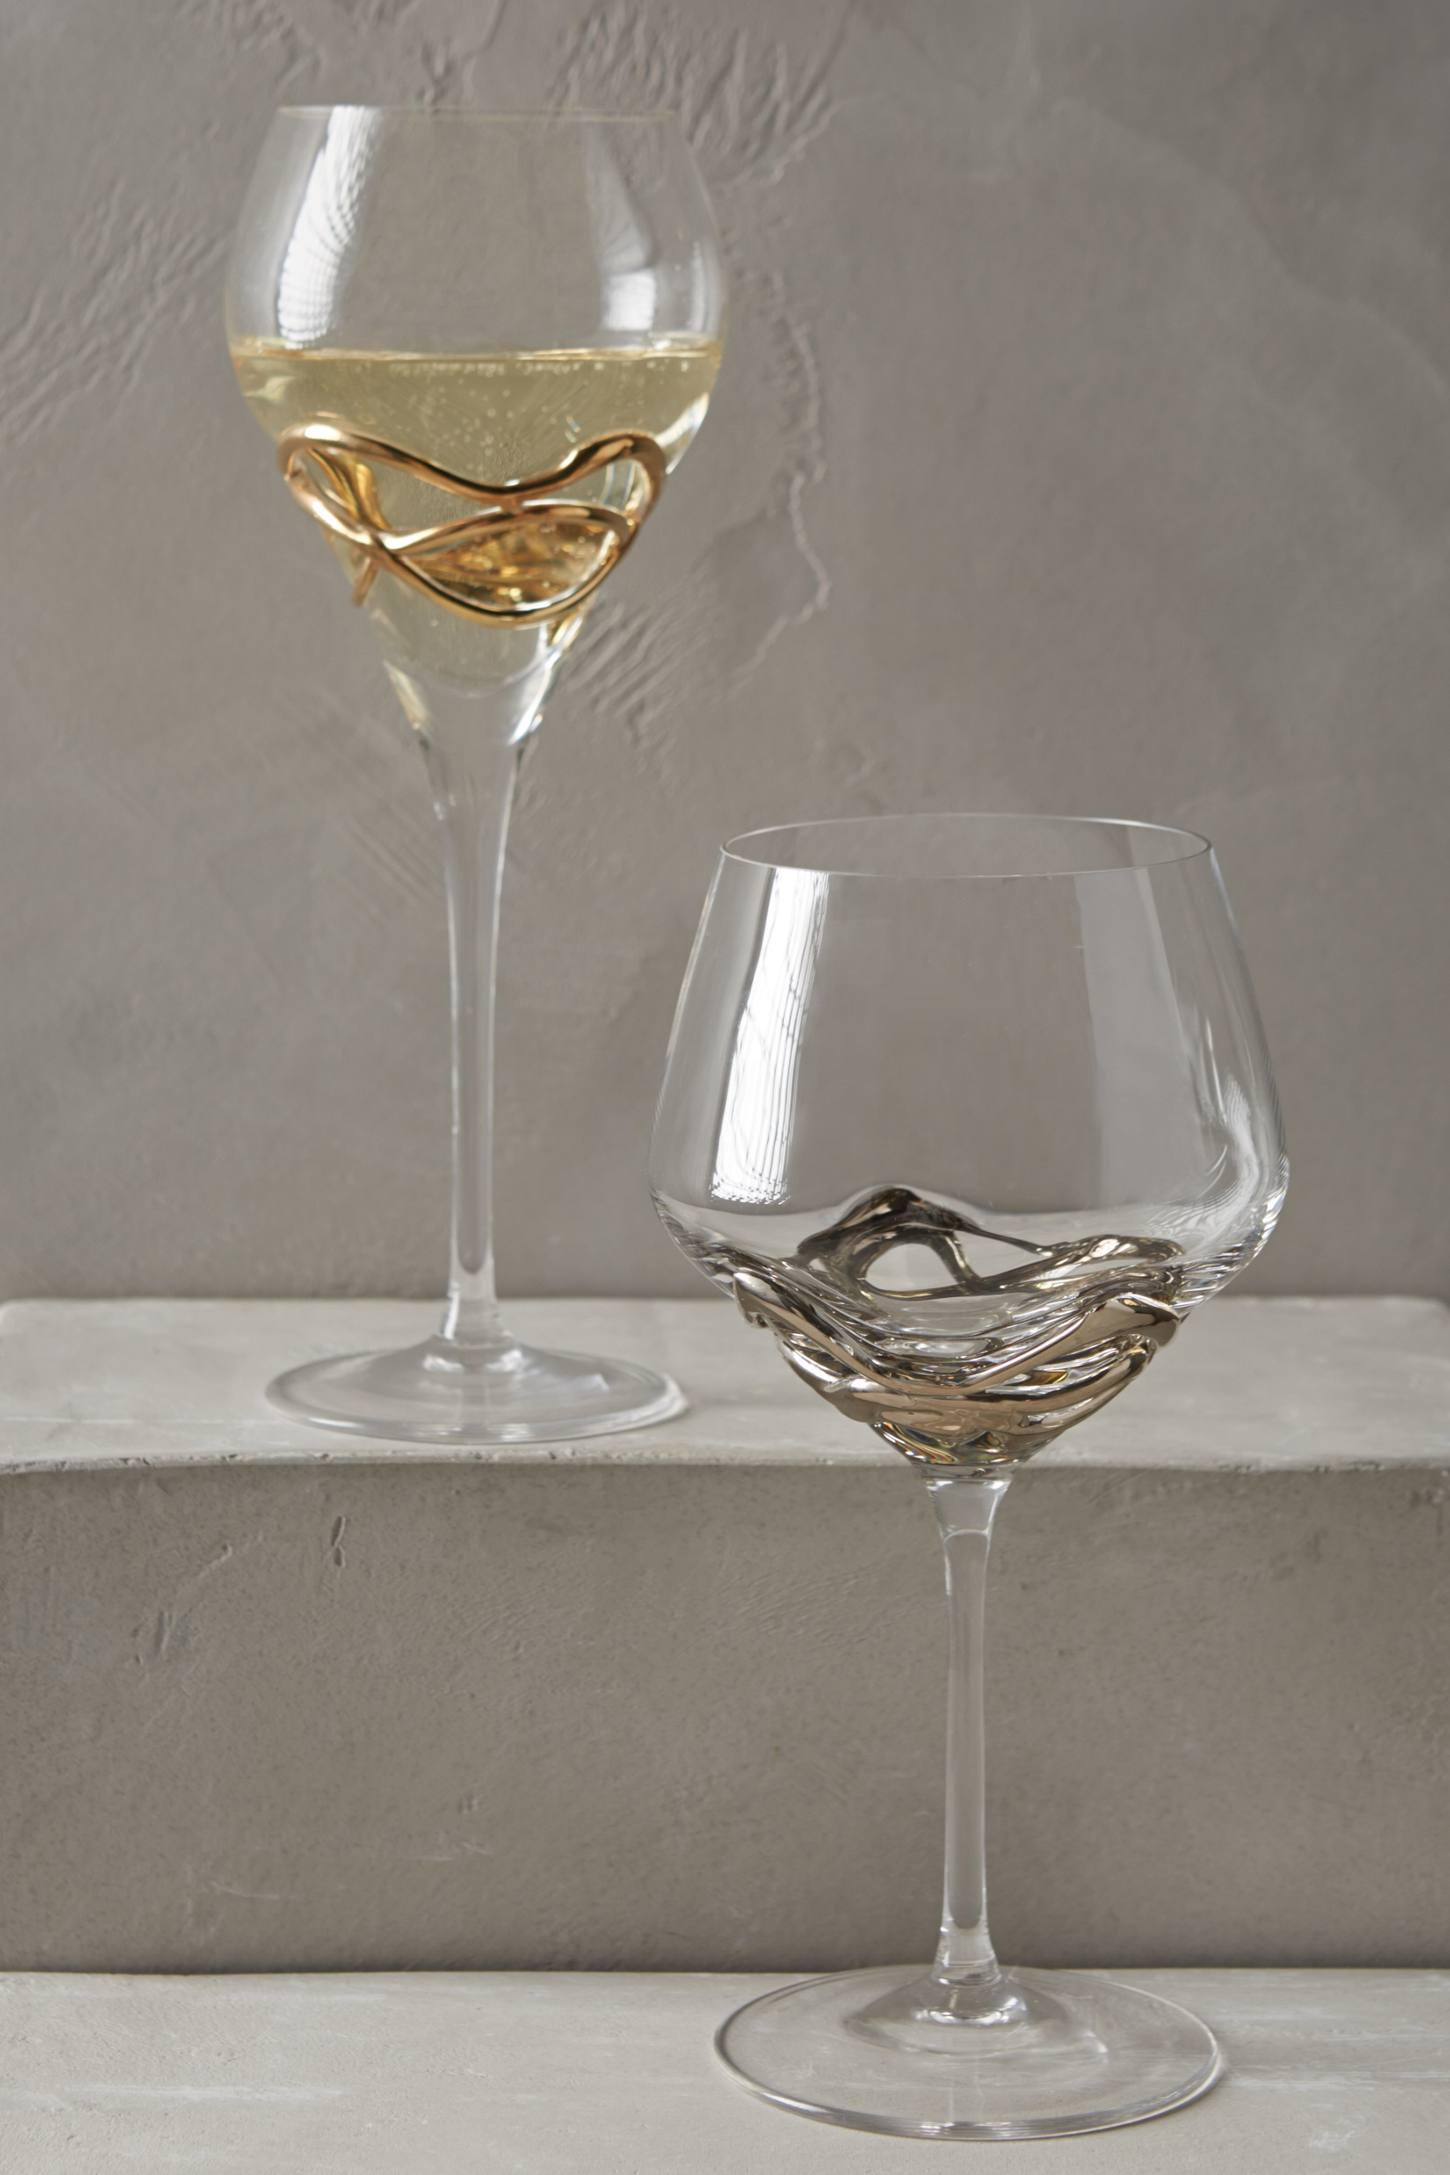 Slide View: 5: Glimmer-Wrapped White Wine Glass